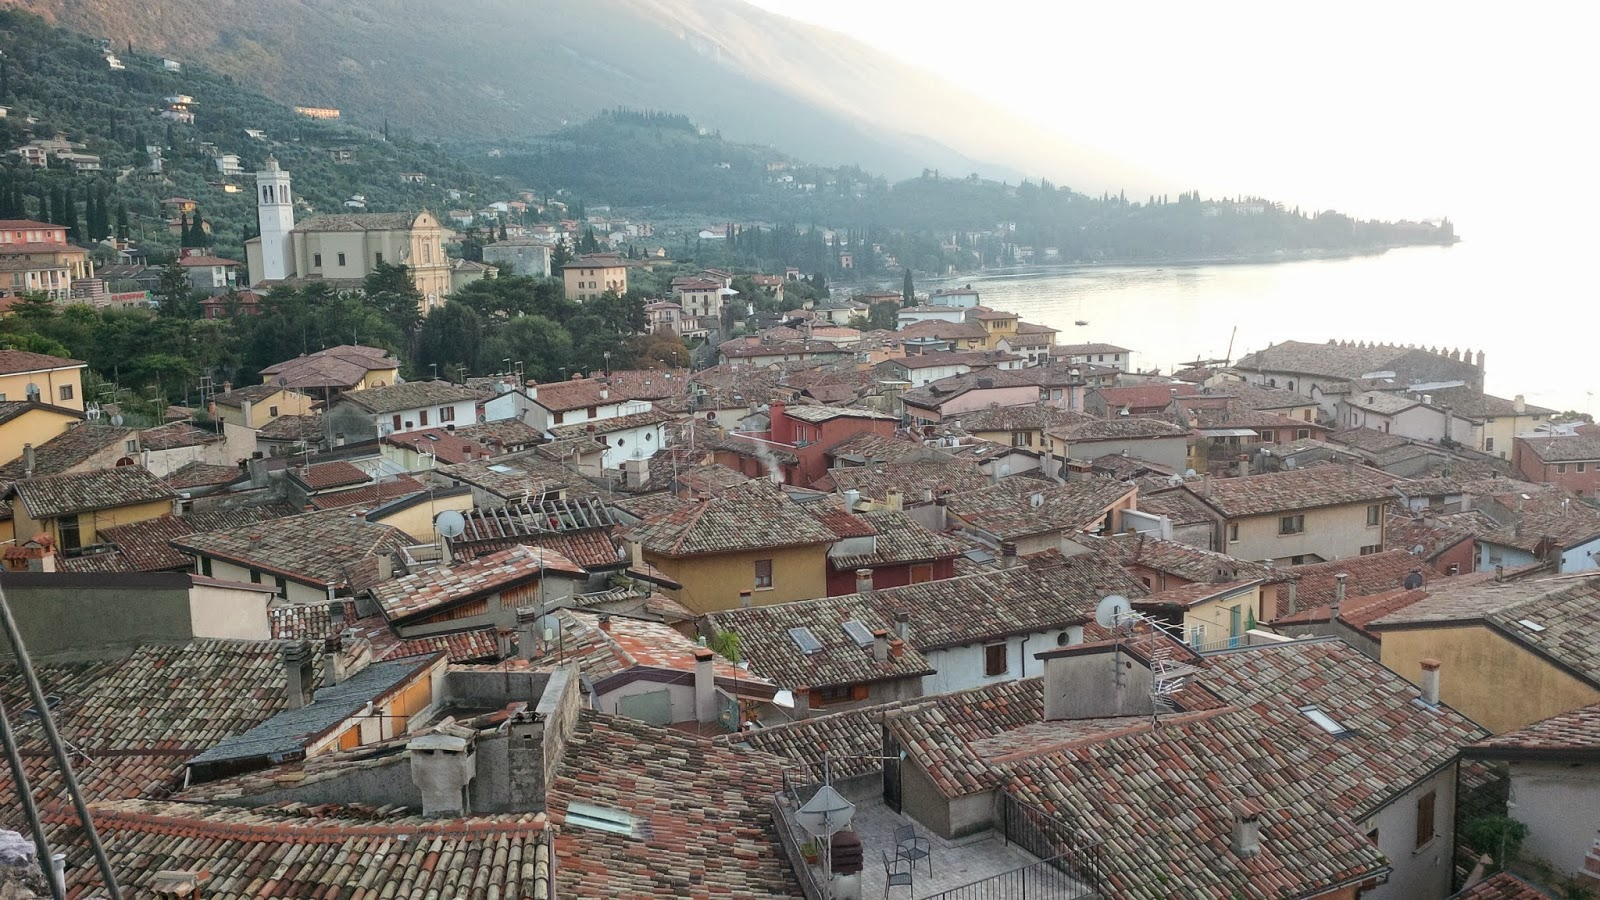 The rooftops of Malcesine seen from the castle